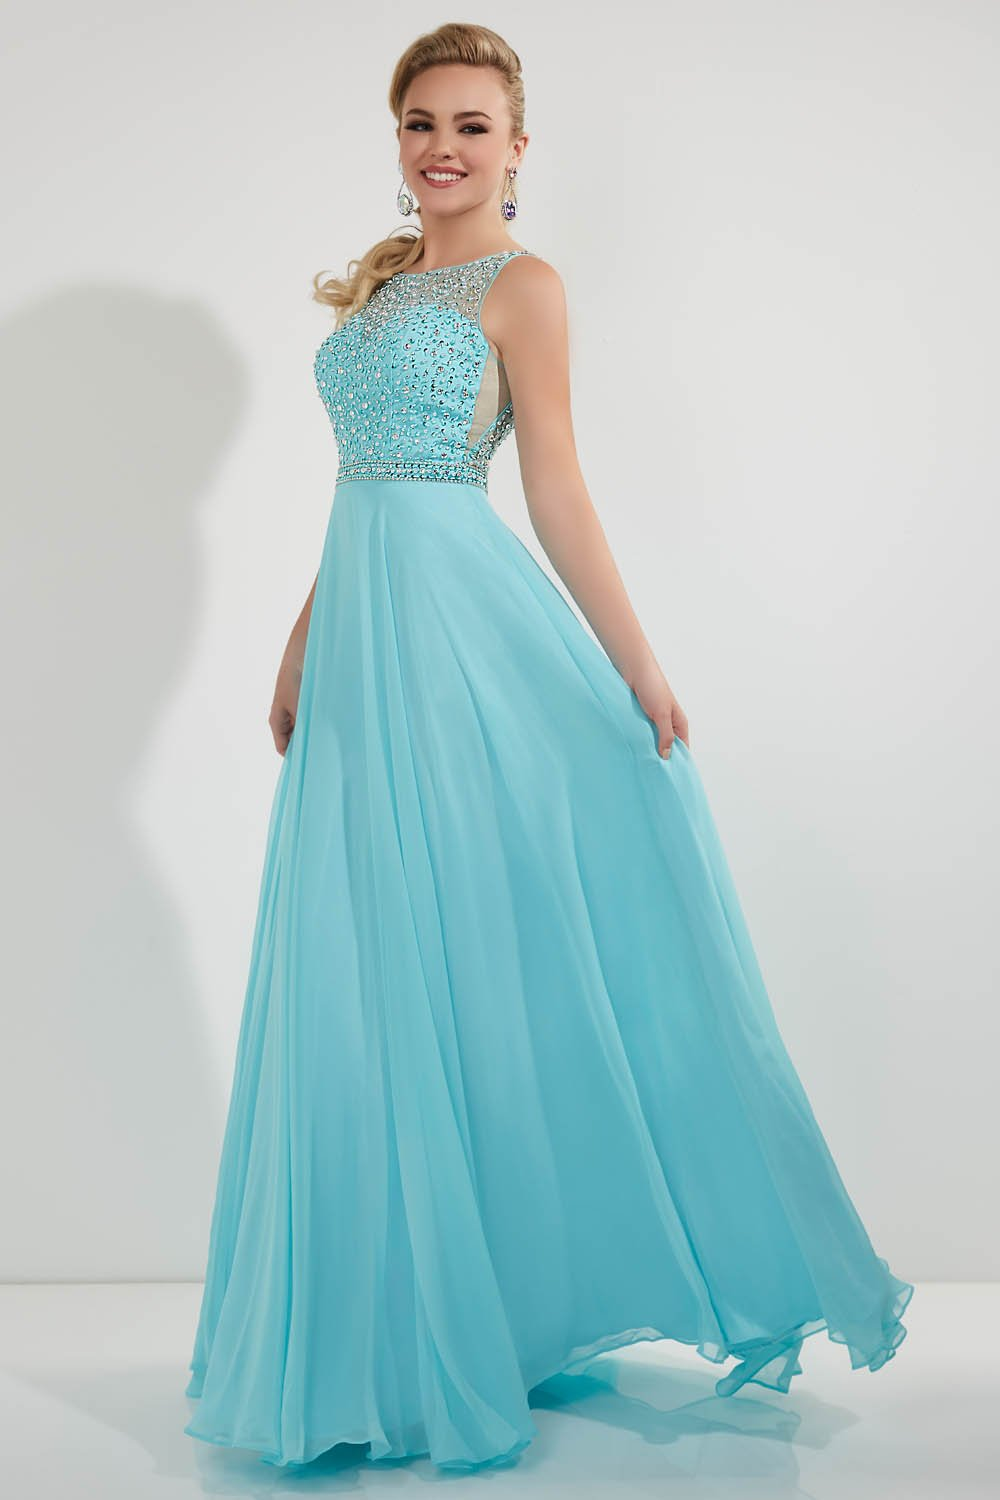 Studio 17 12713 prom dress images.  Studio 17 12713 is available in these colors: Aqua, Yellow.